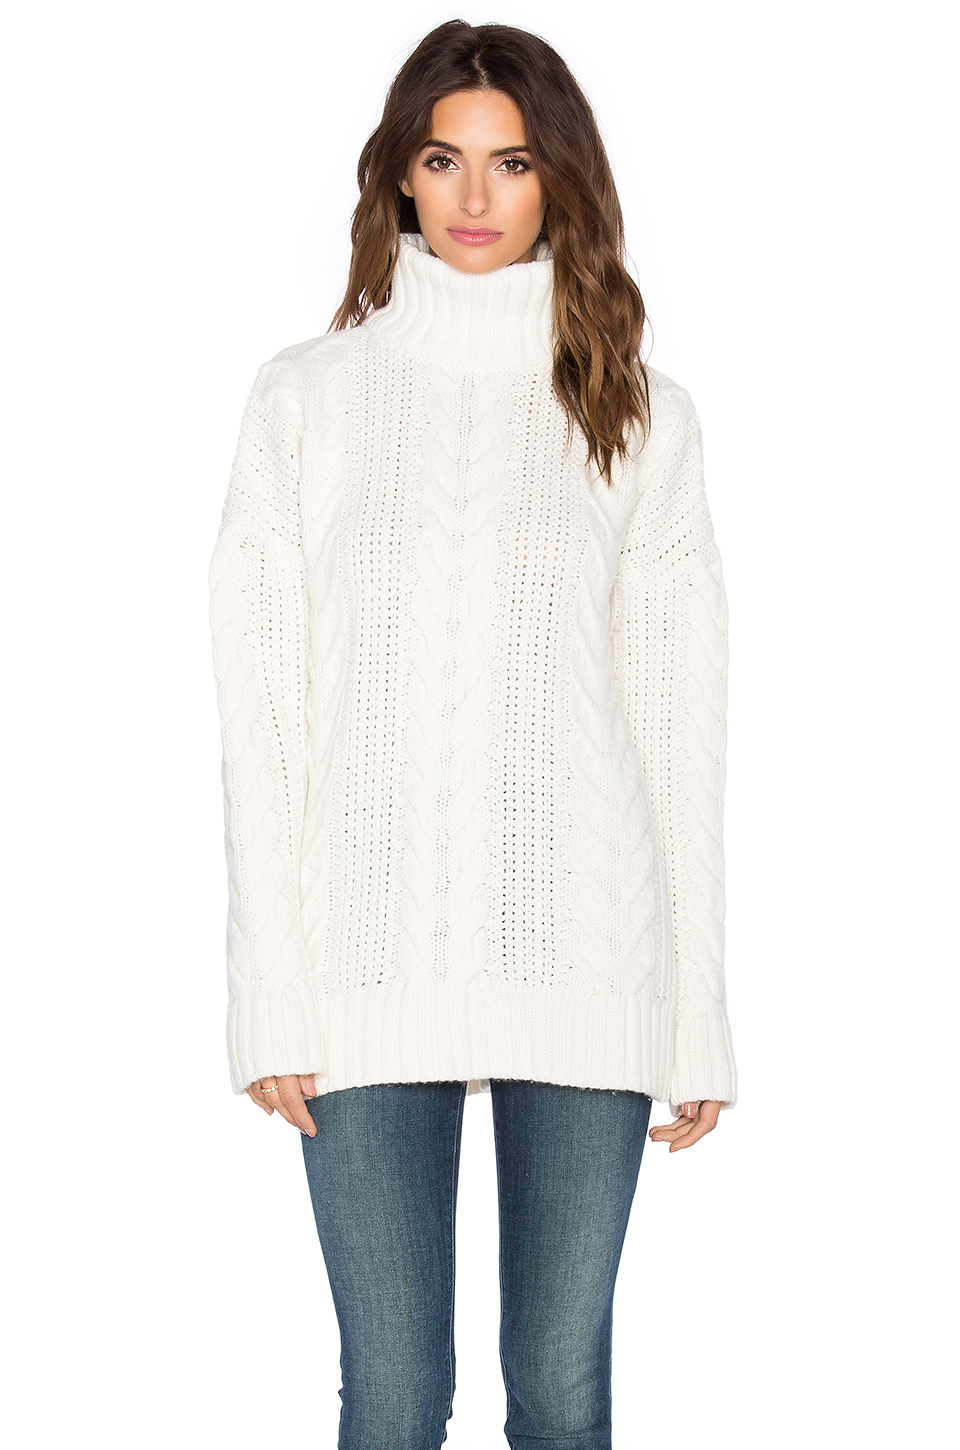 You searched for: white knit sweater! Etsy is the home to thousands of handmade, vintage, and one-of-a-kind products and gifts related to your search. No matter what you're looking for or where you are in the world, our global marketplace of sellers can help you find unique and affordable options. Let's get started!